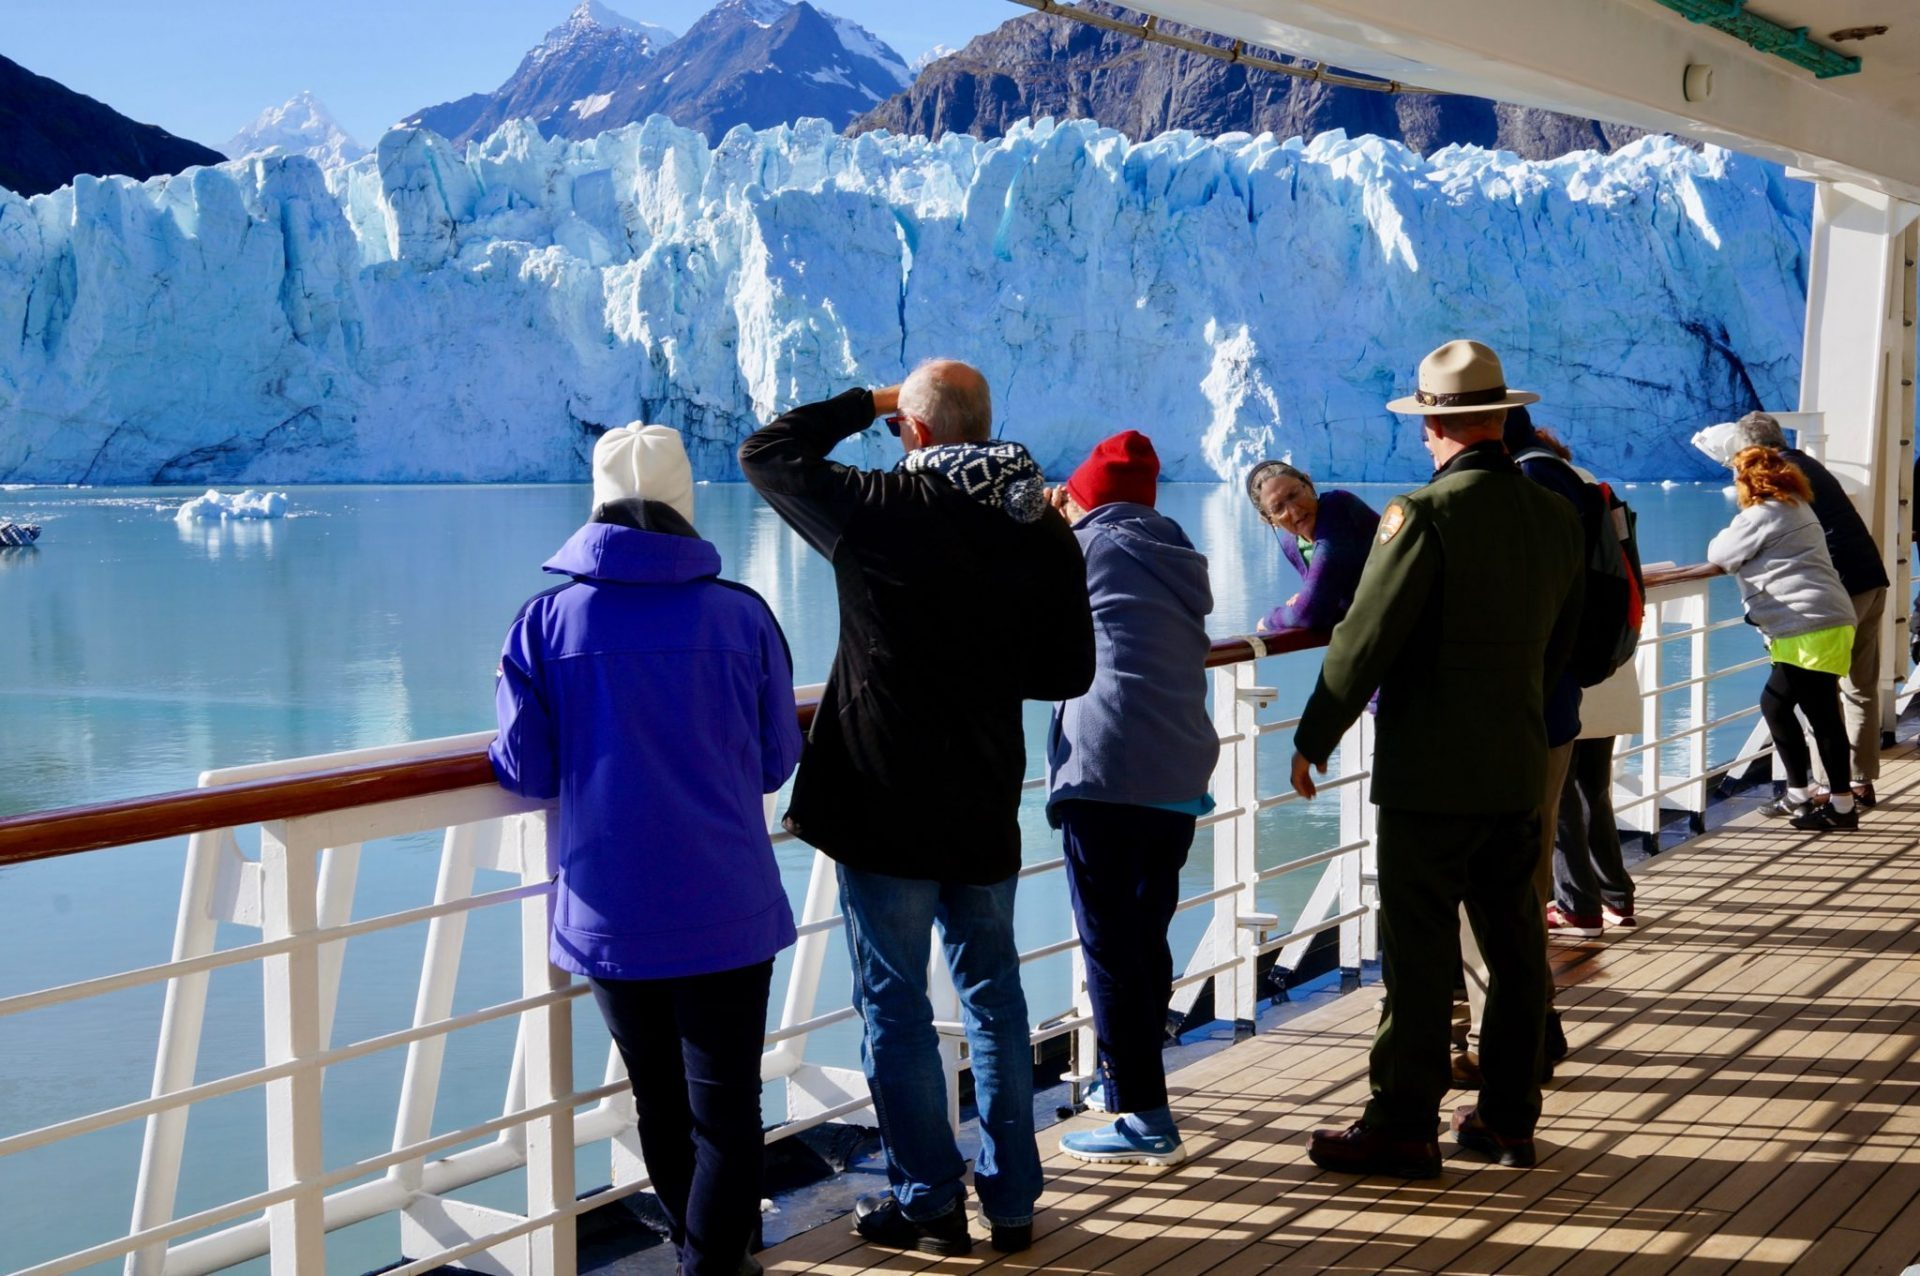 National Park ranger talk on cruise ship in Glacier Bay National Park Alaska